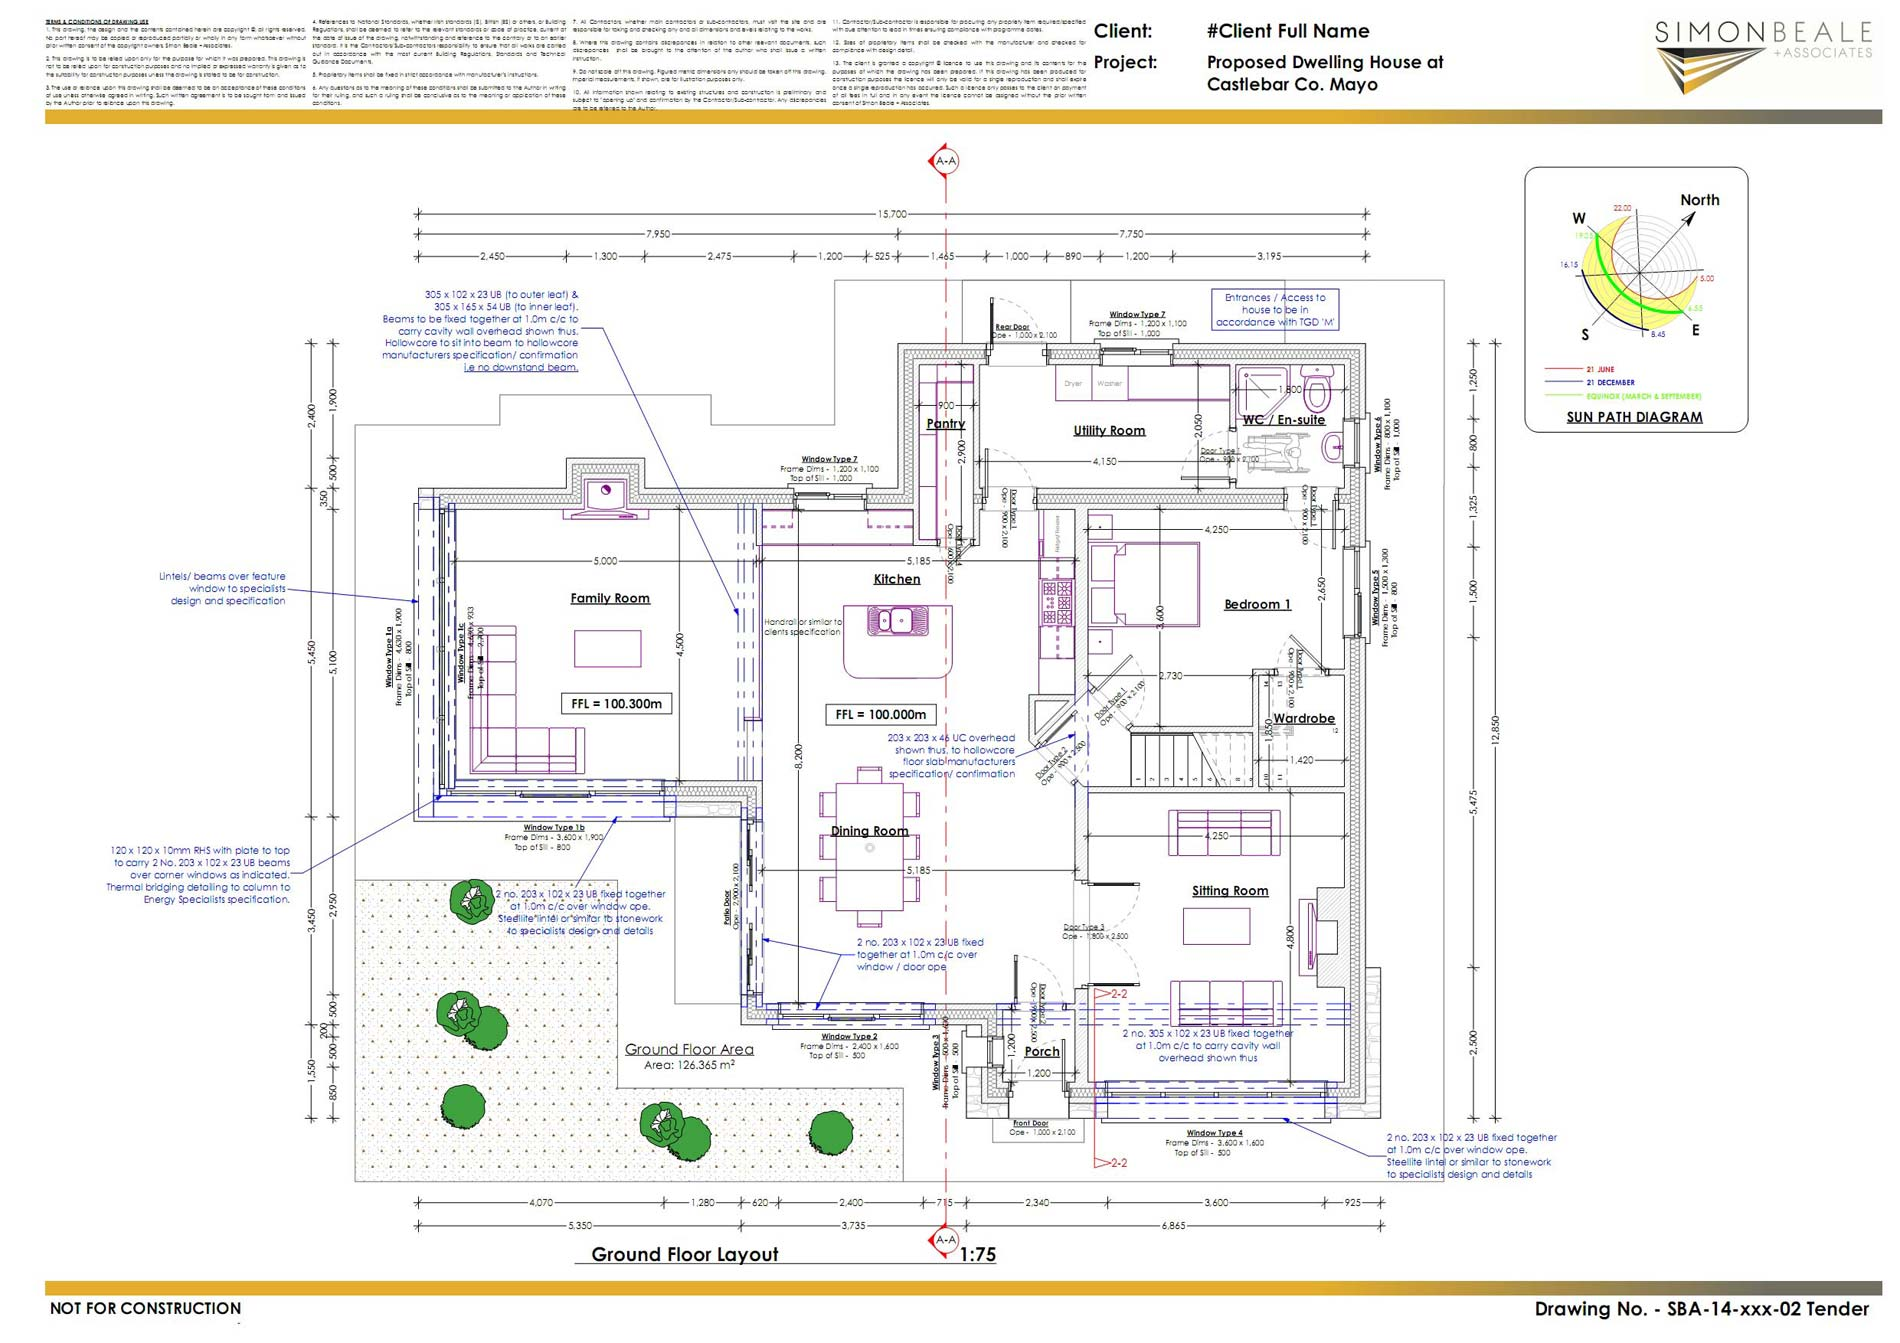 Ground Floor Layout_pagenumber.001